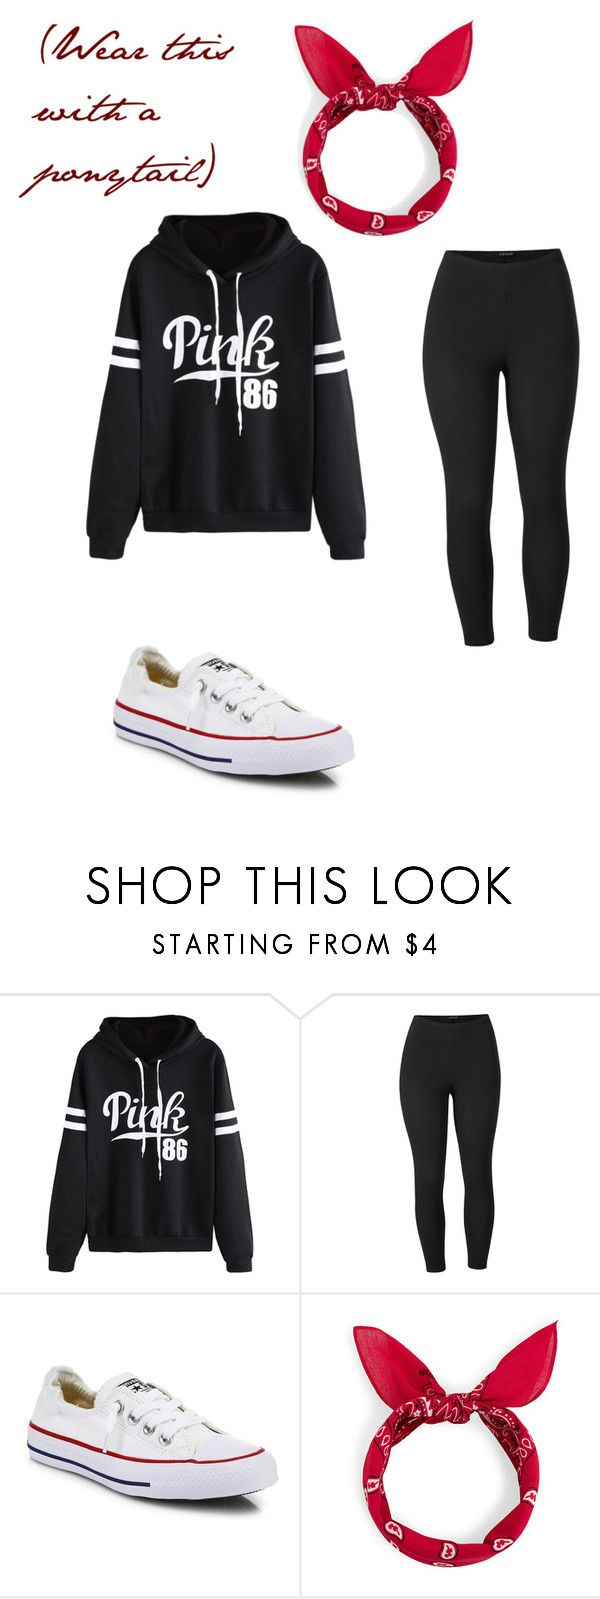 Best 25+ Lazy school outfit ideas on Pinterest | White vans outfit Comfy school outfits and ...